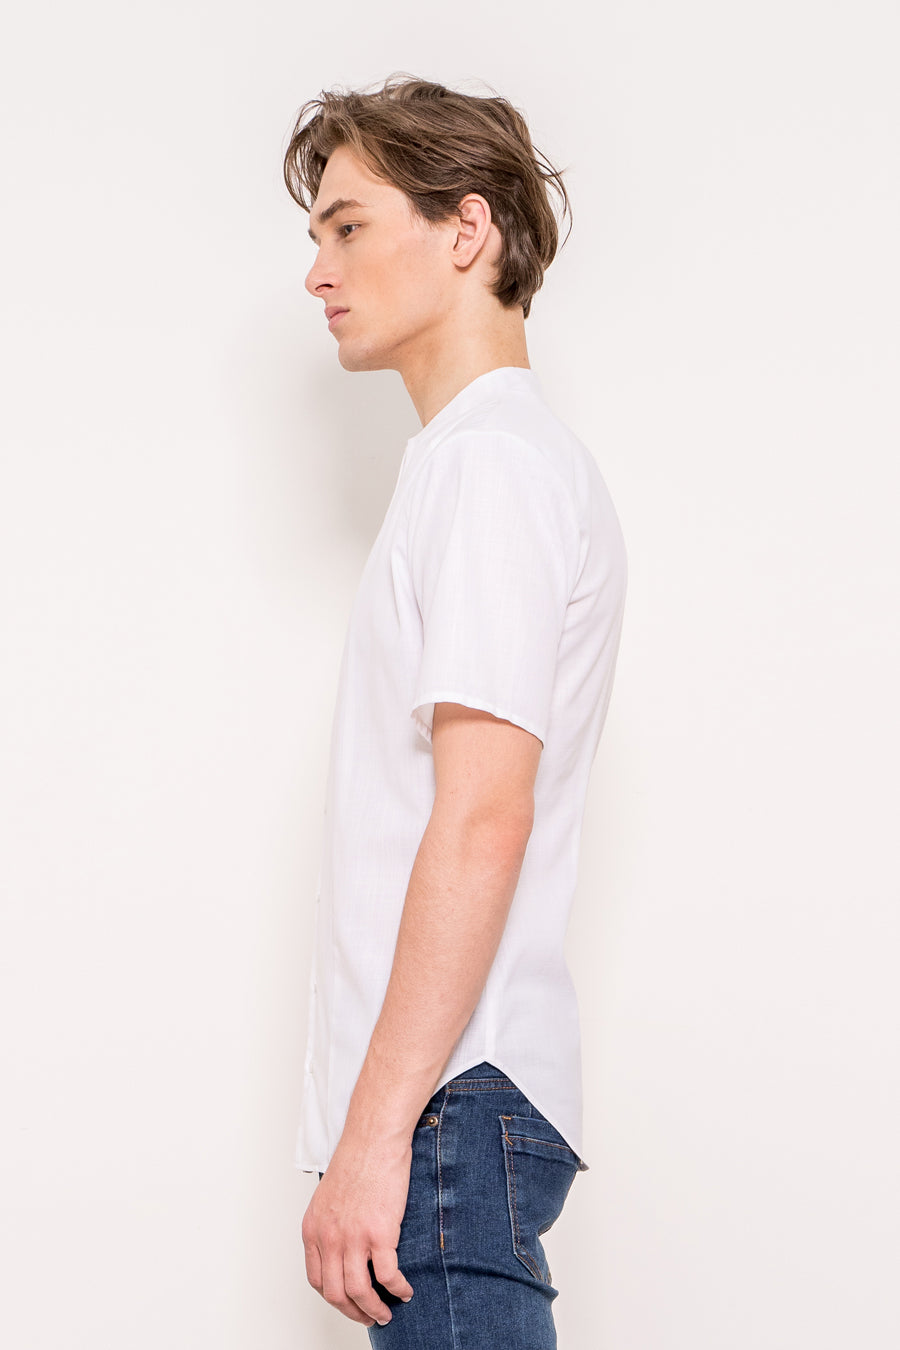 Yves - Non Iron fitted Short Sleeve White Shirt